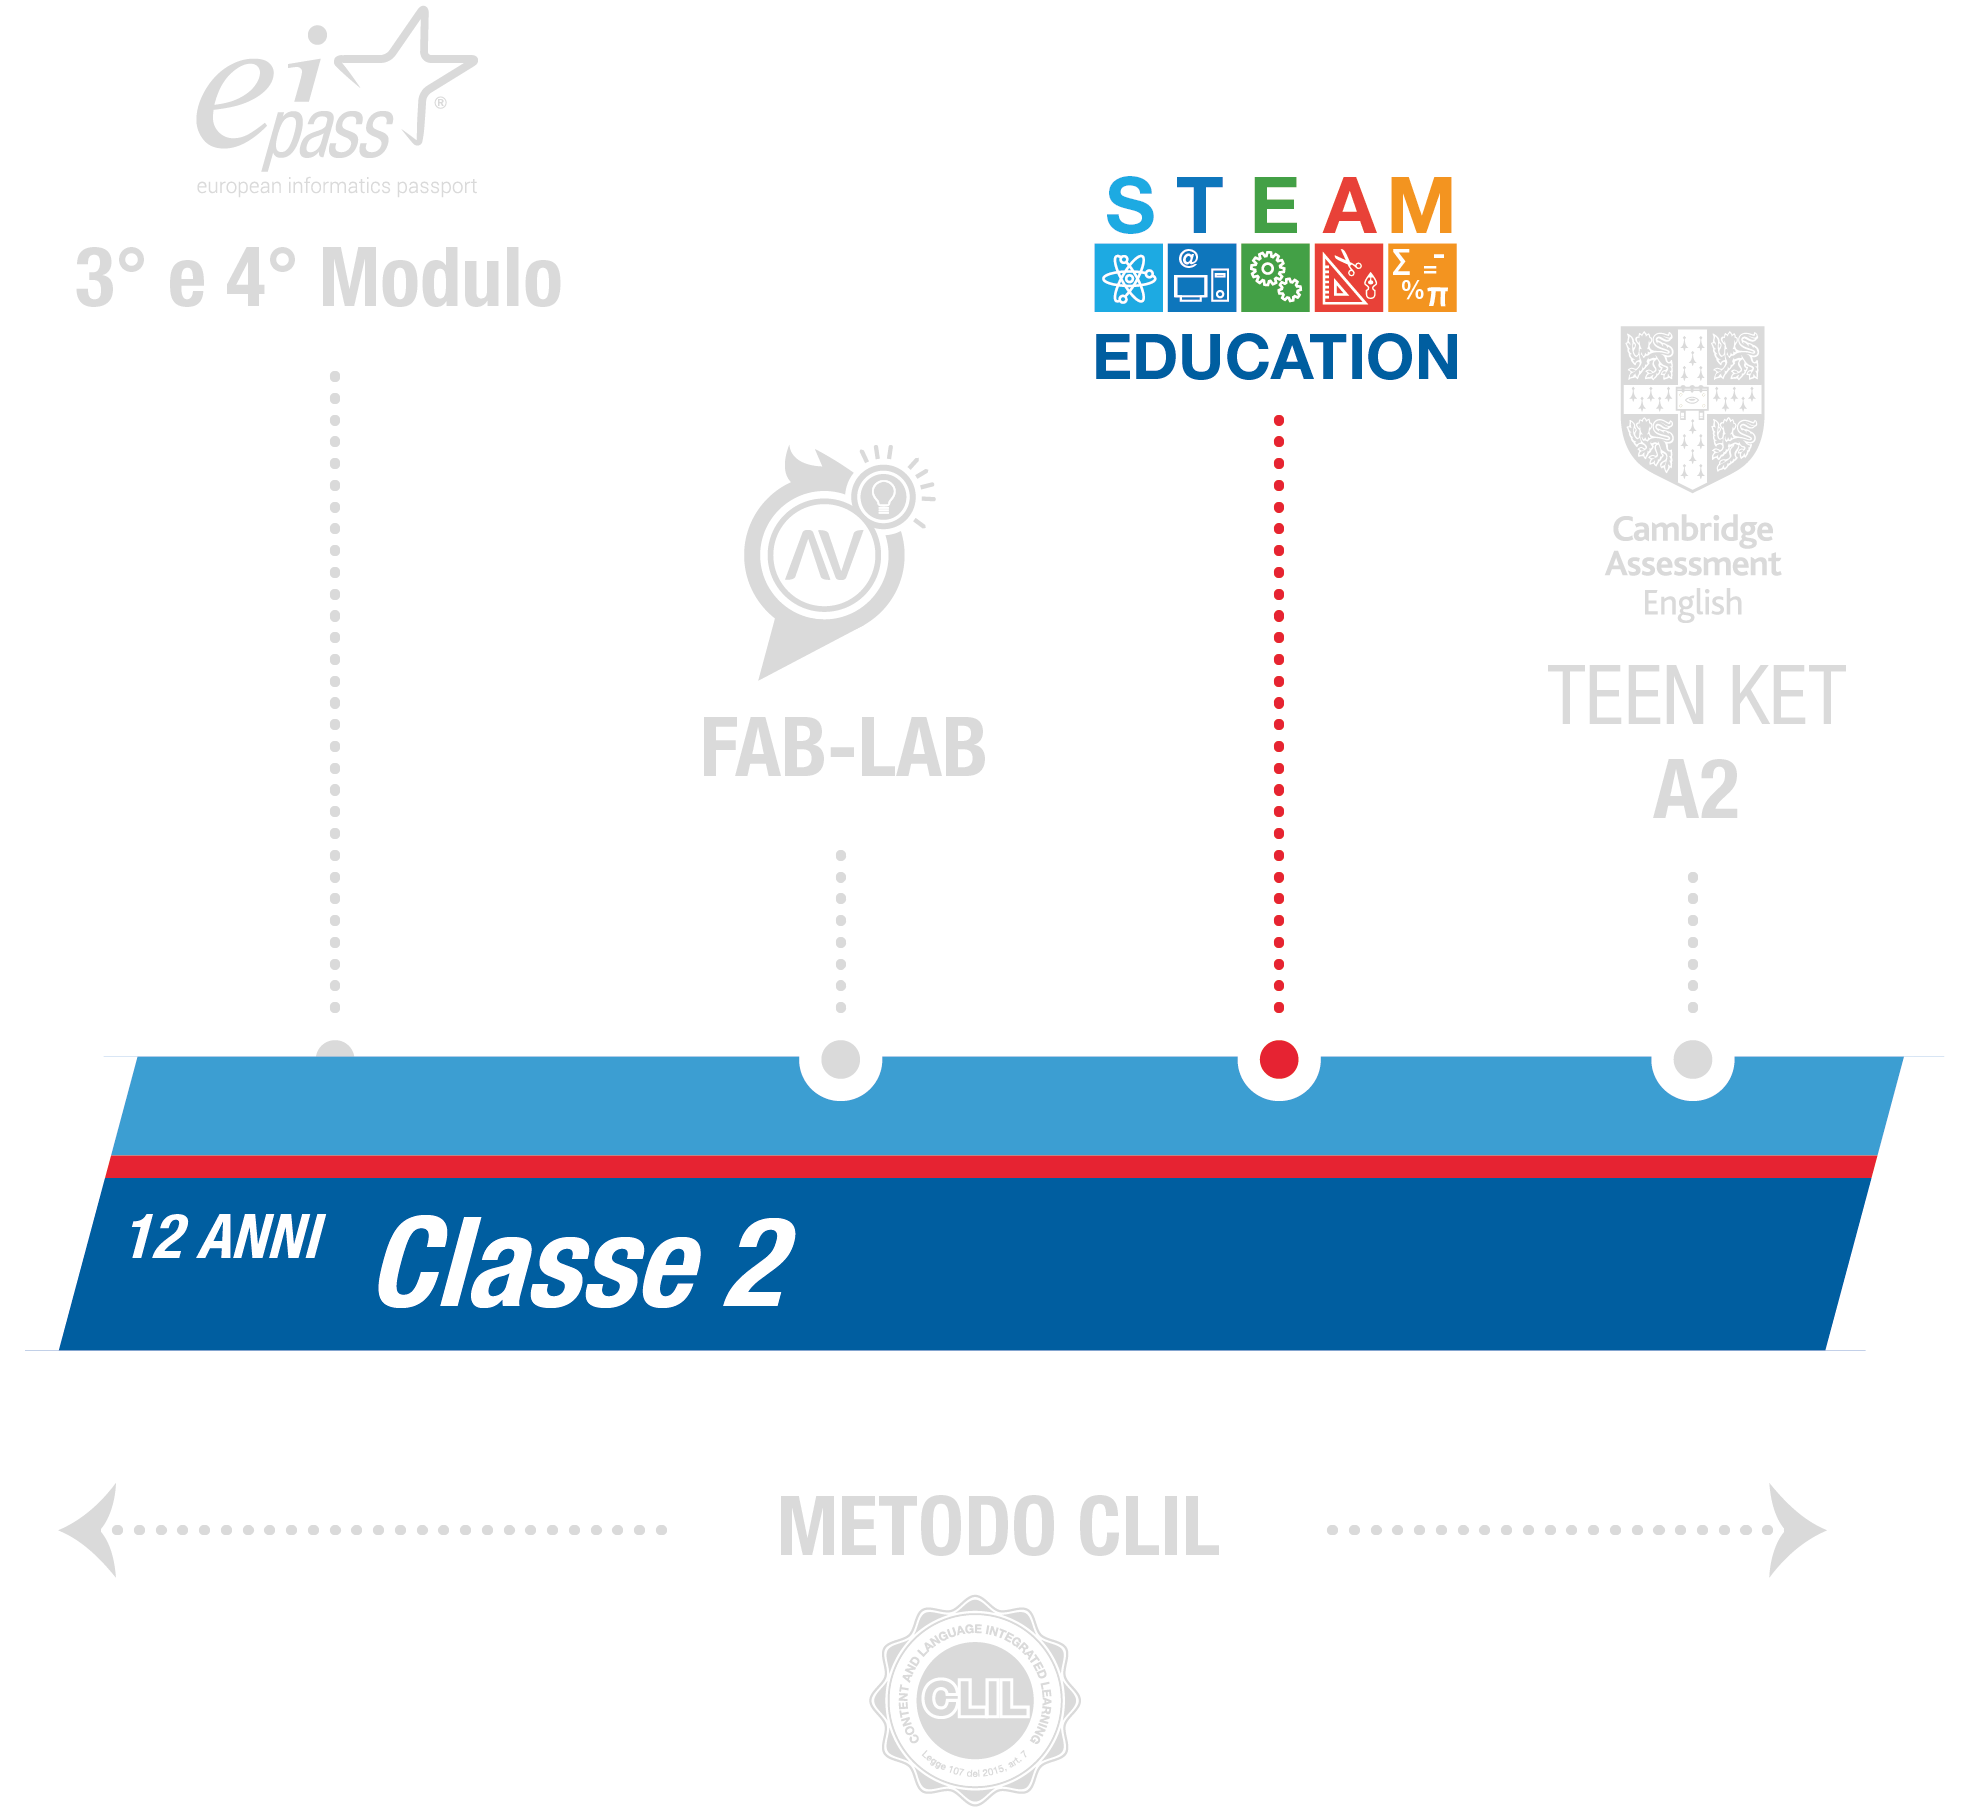 istituto-nobile-middle-school-steam-2anno